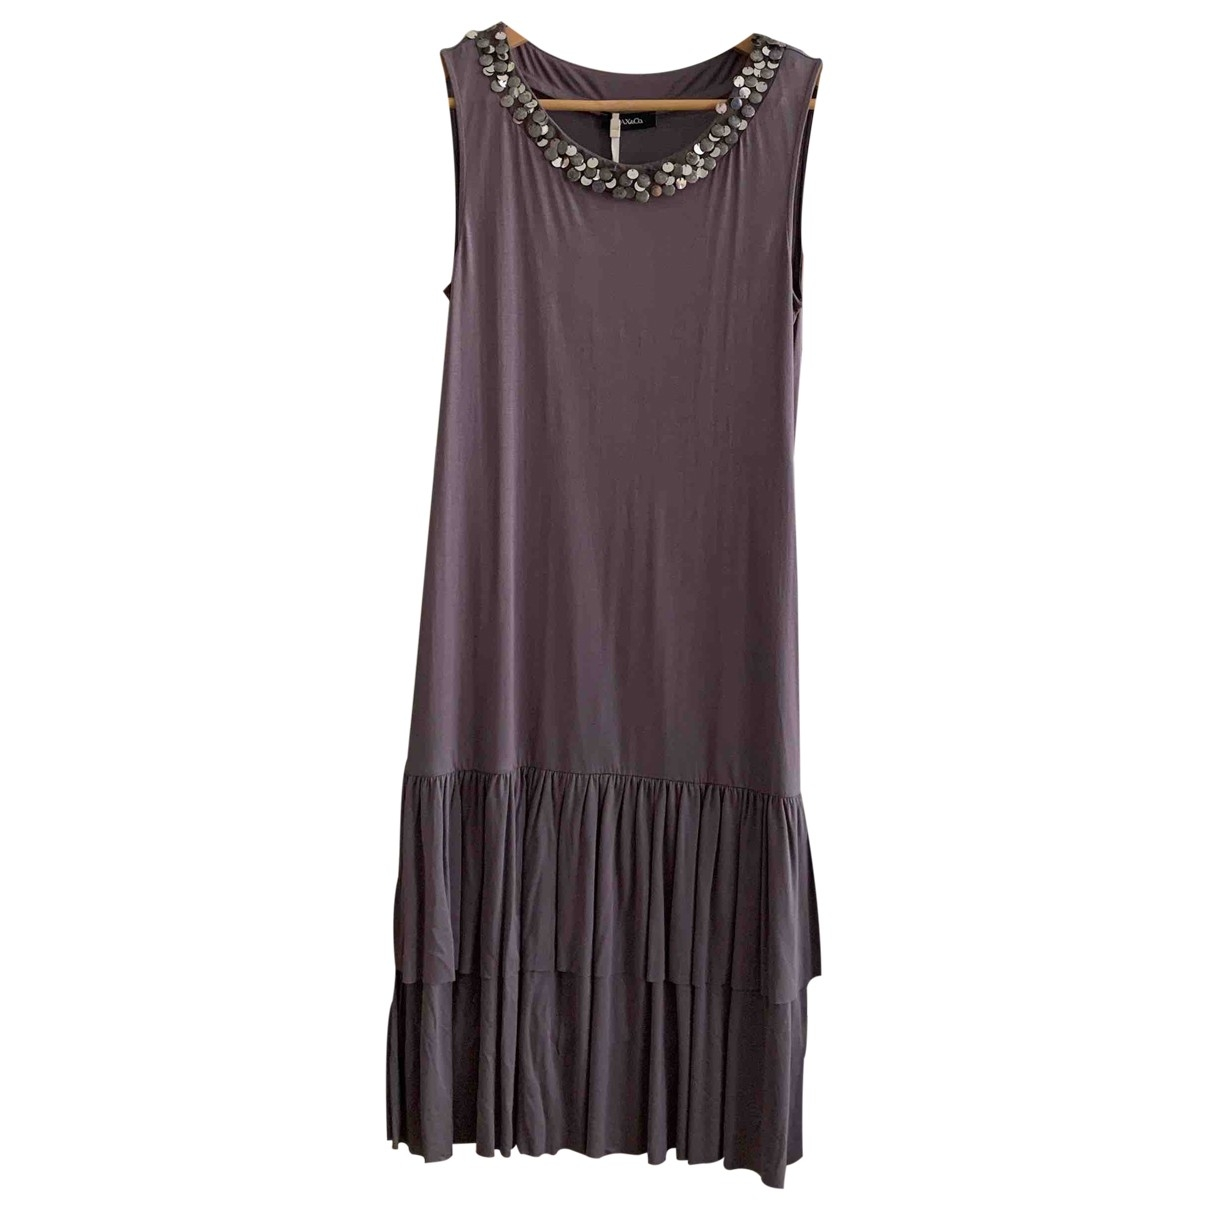 Max & Co \N Purple dress for Women 40 IT